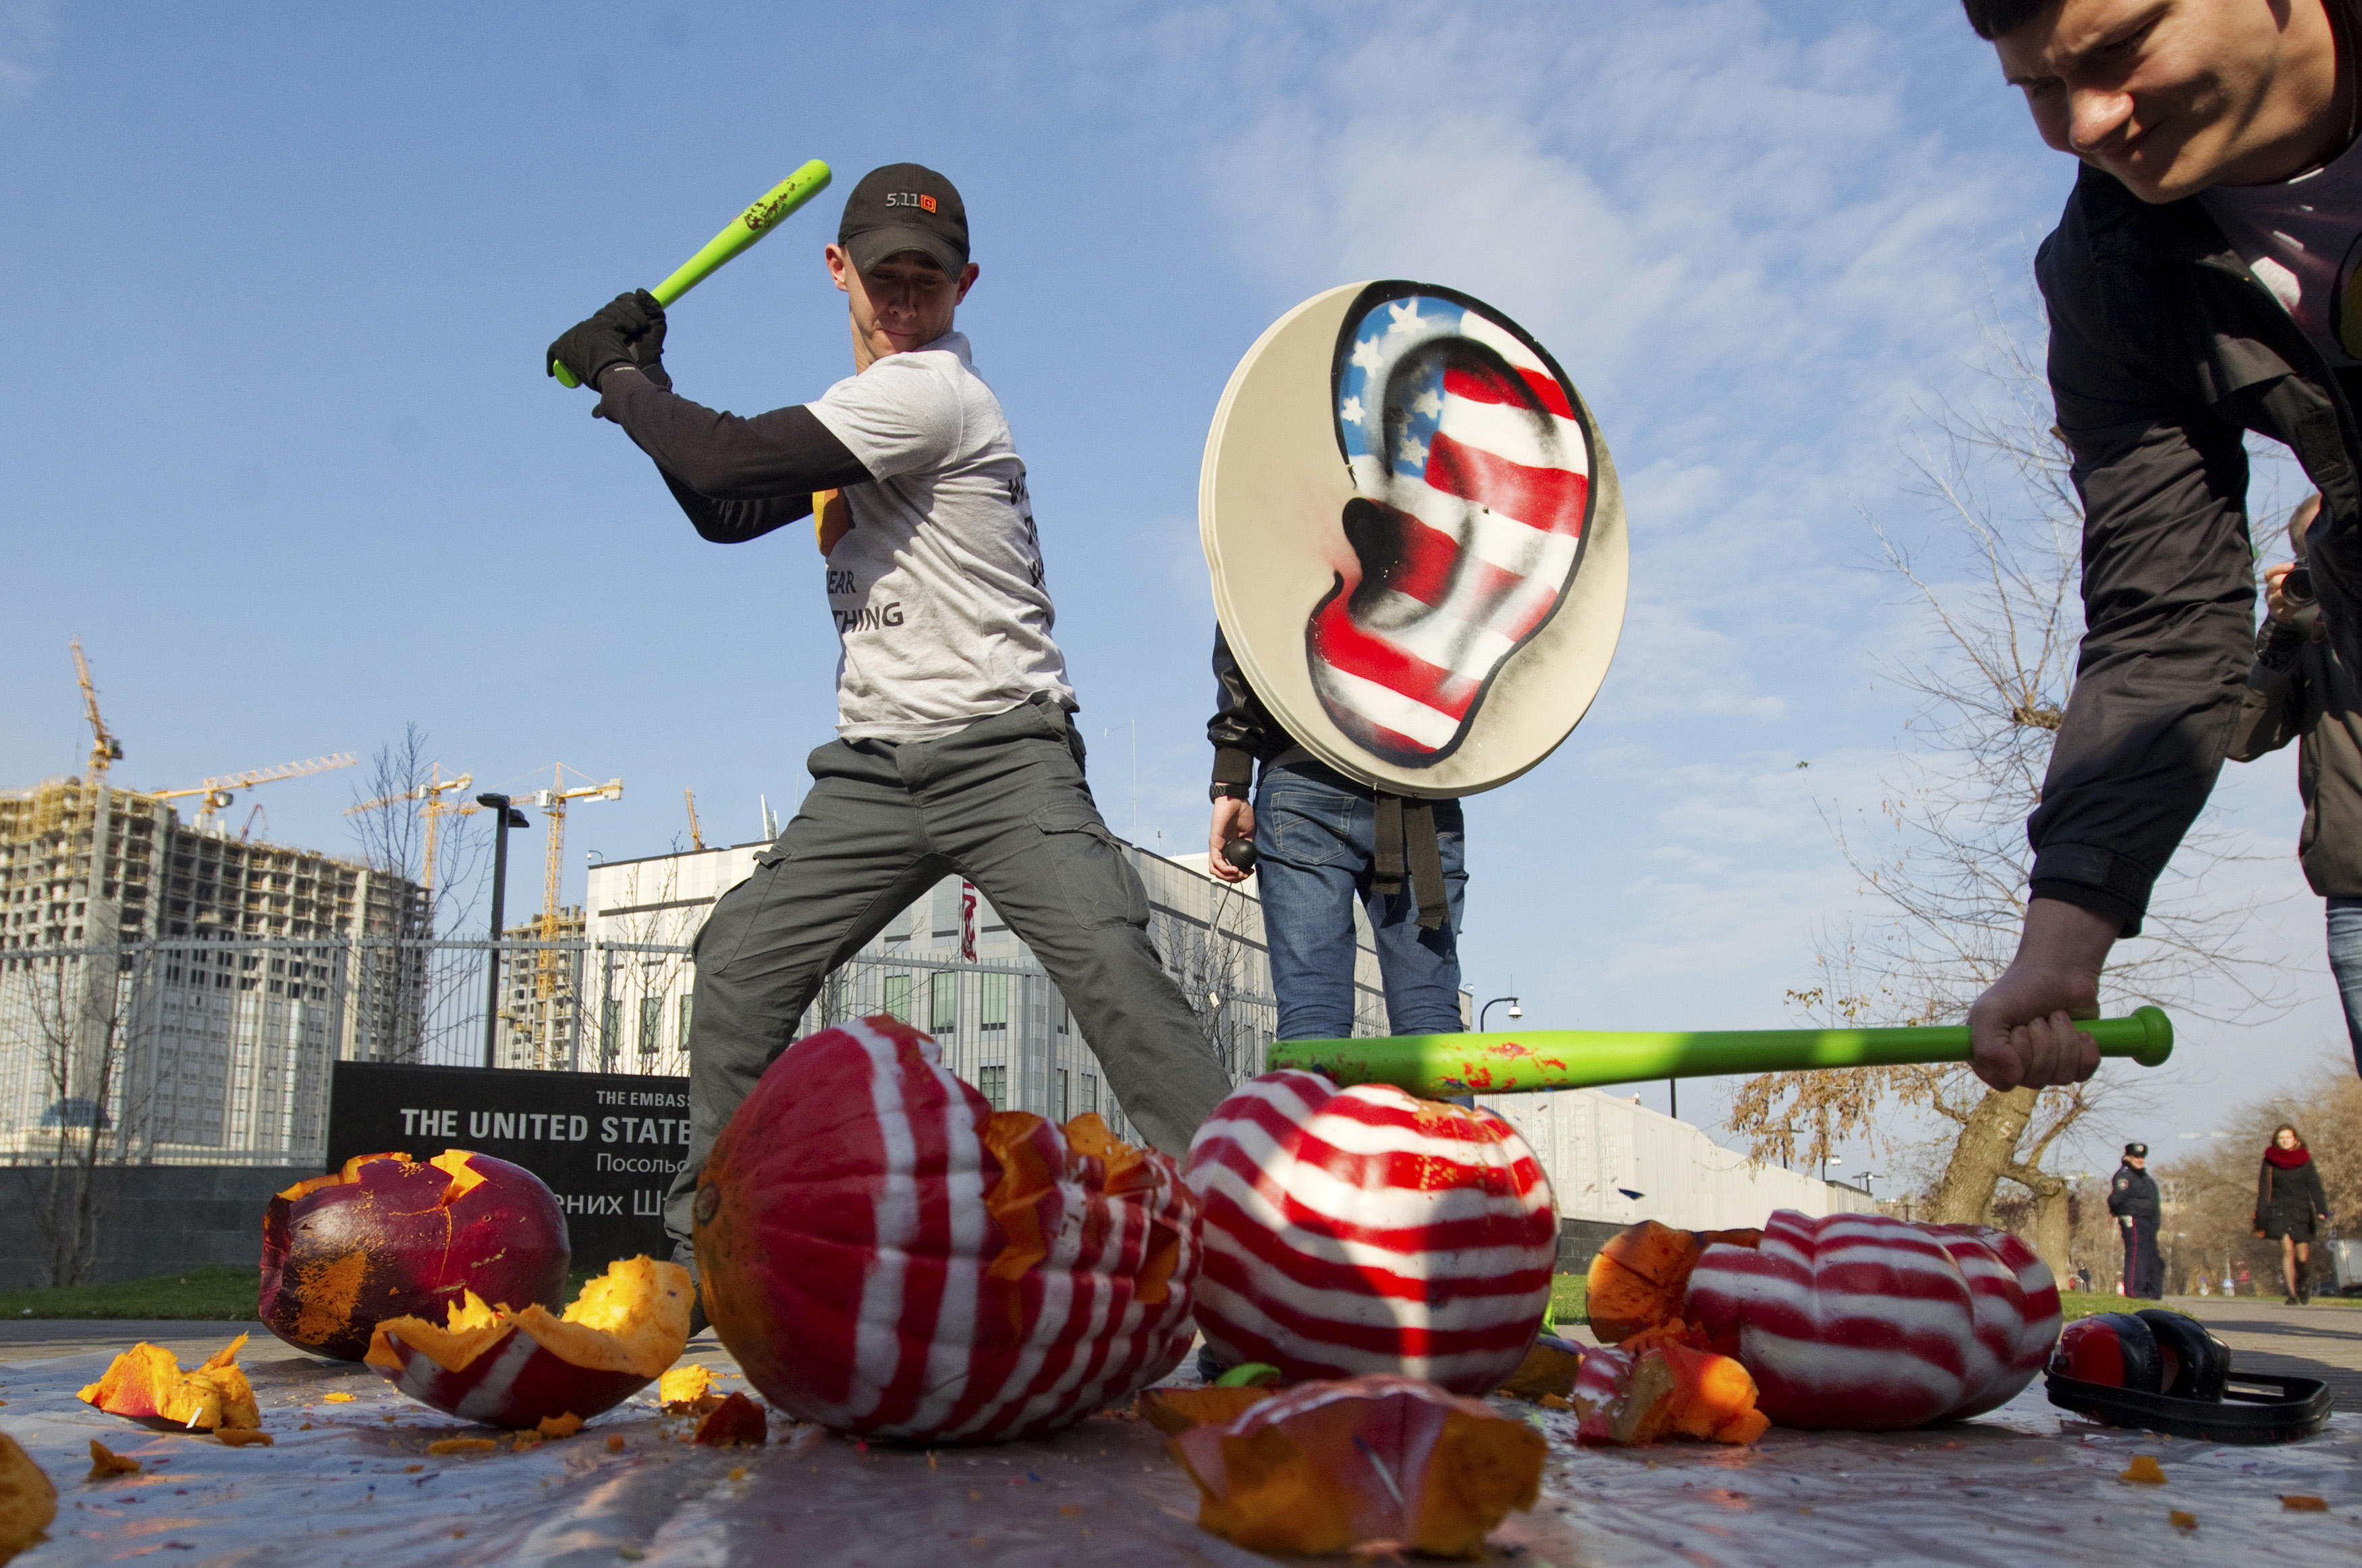 Activists from the Internet Party of Ukraine smash a pumpkin with headphones as they stage a demonstration in front of the U.S. embassy in Kiev.